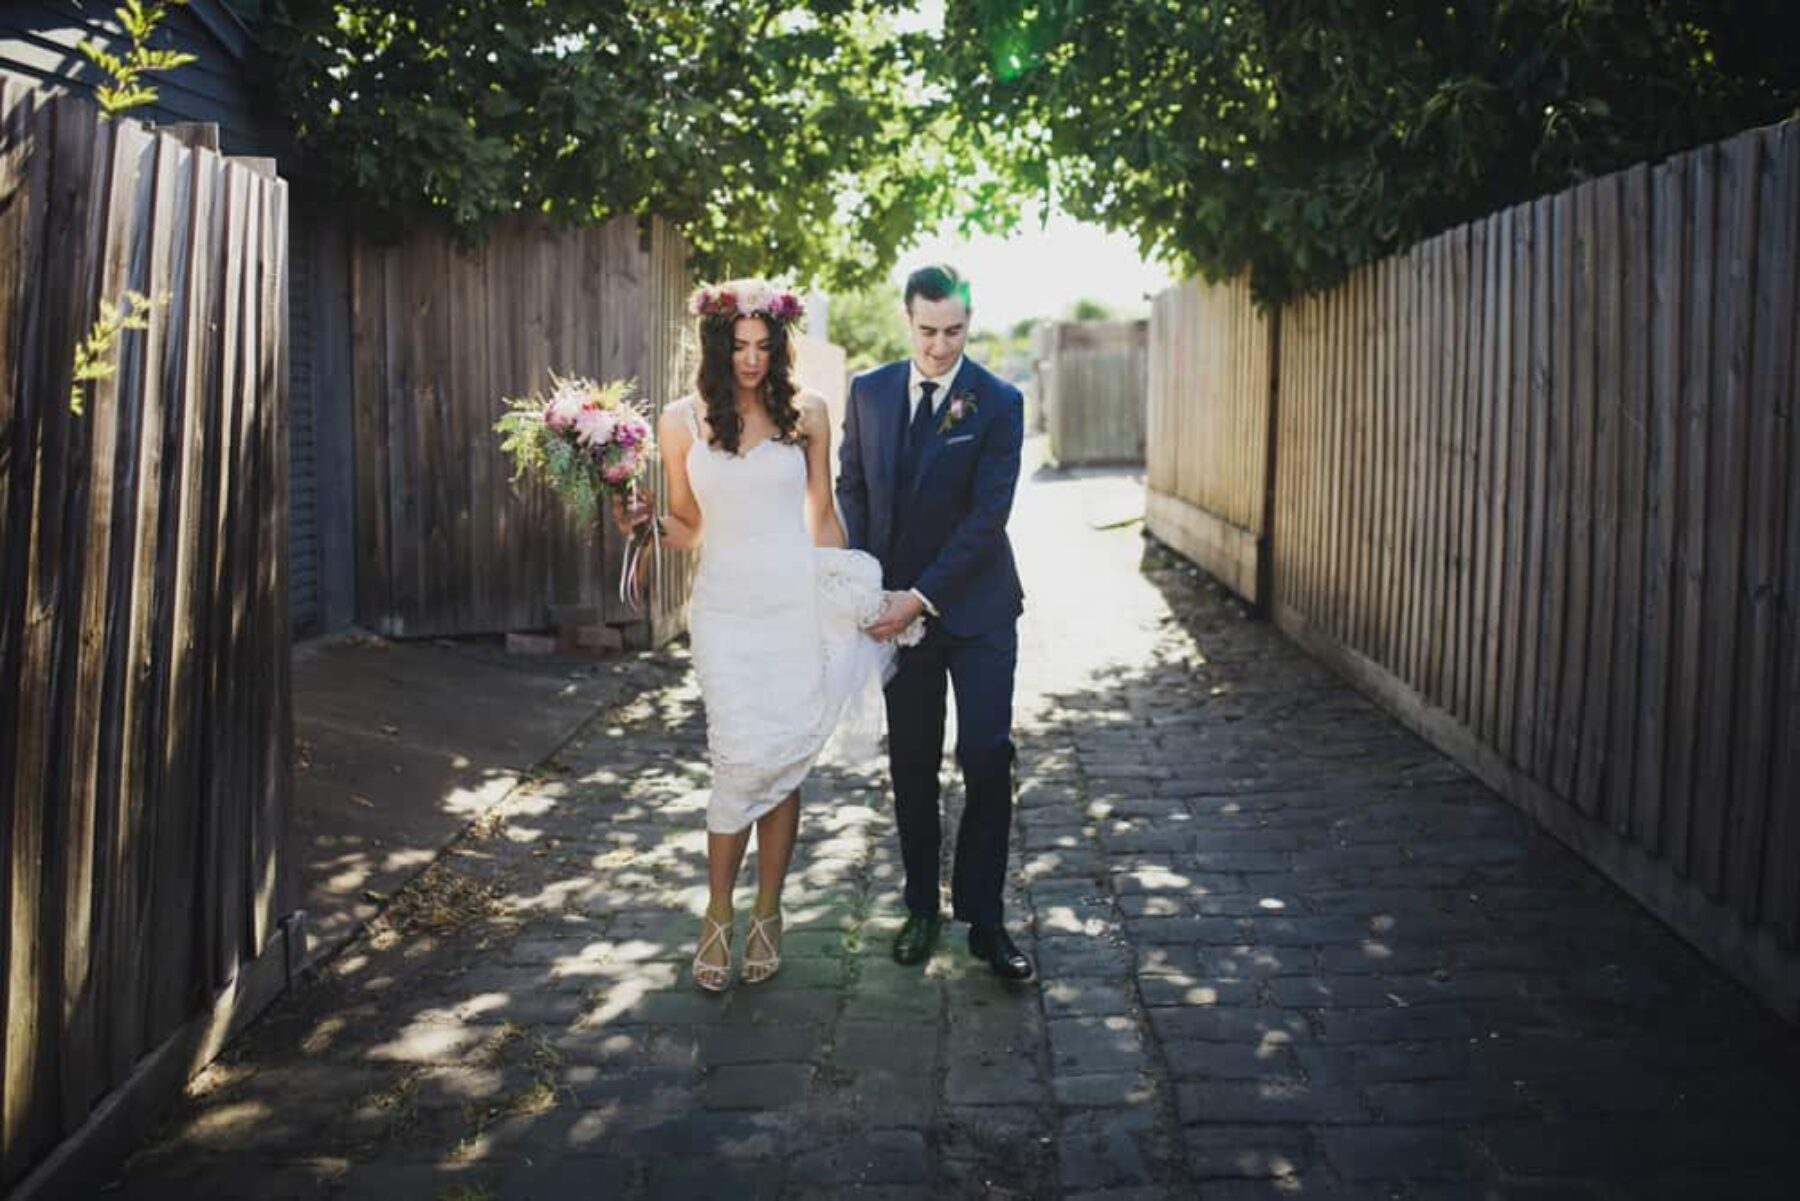 Post Office Hotel wedding - Long Way Home Photography